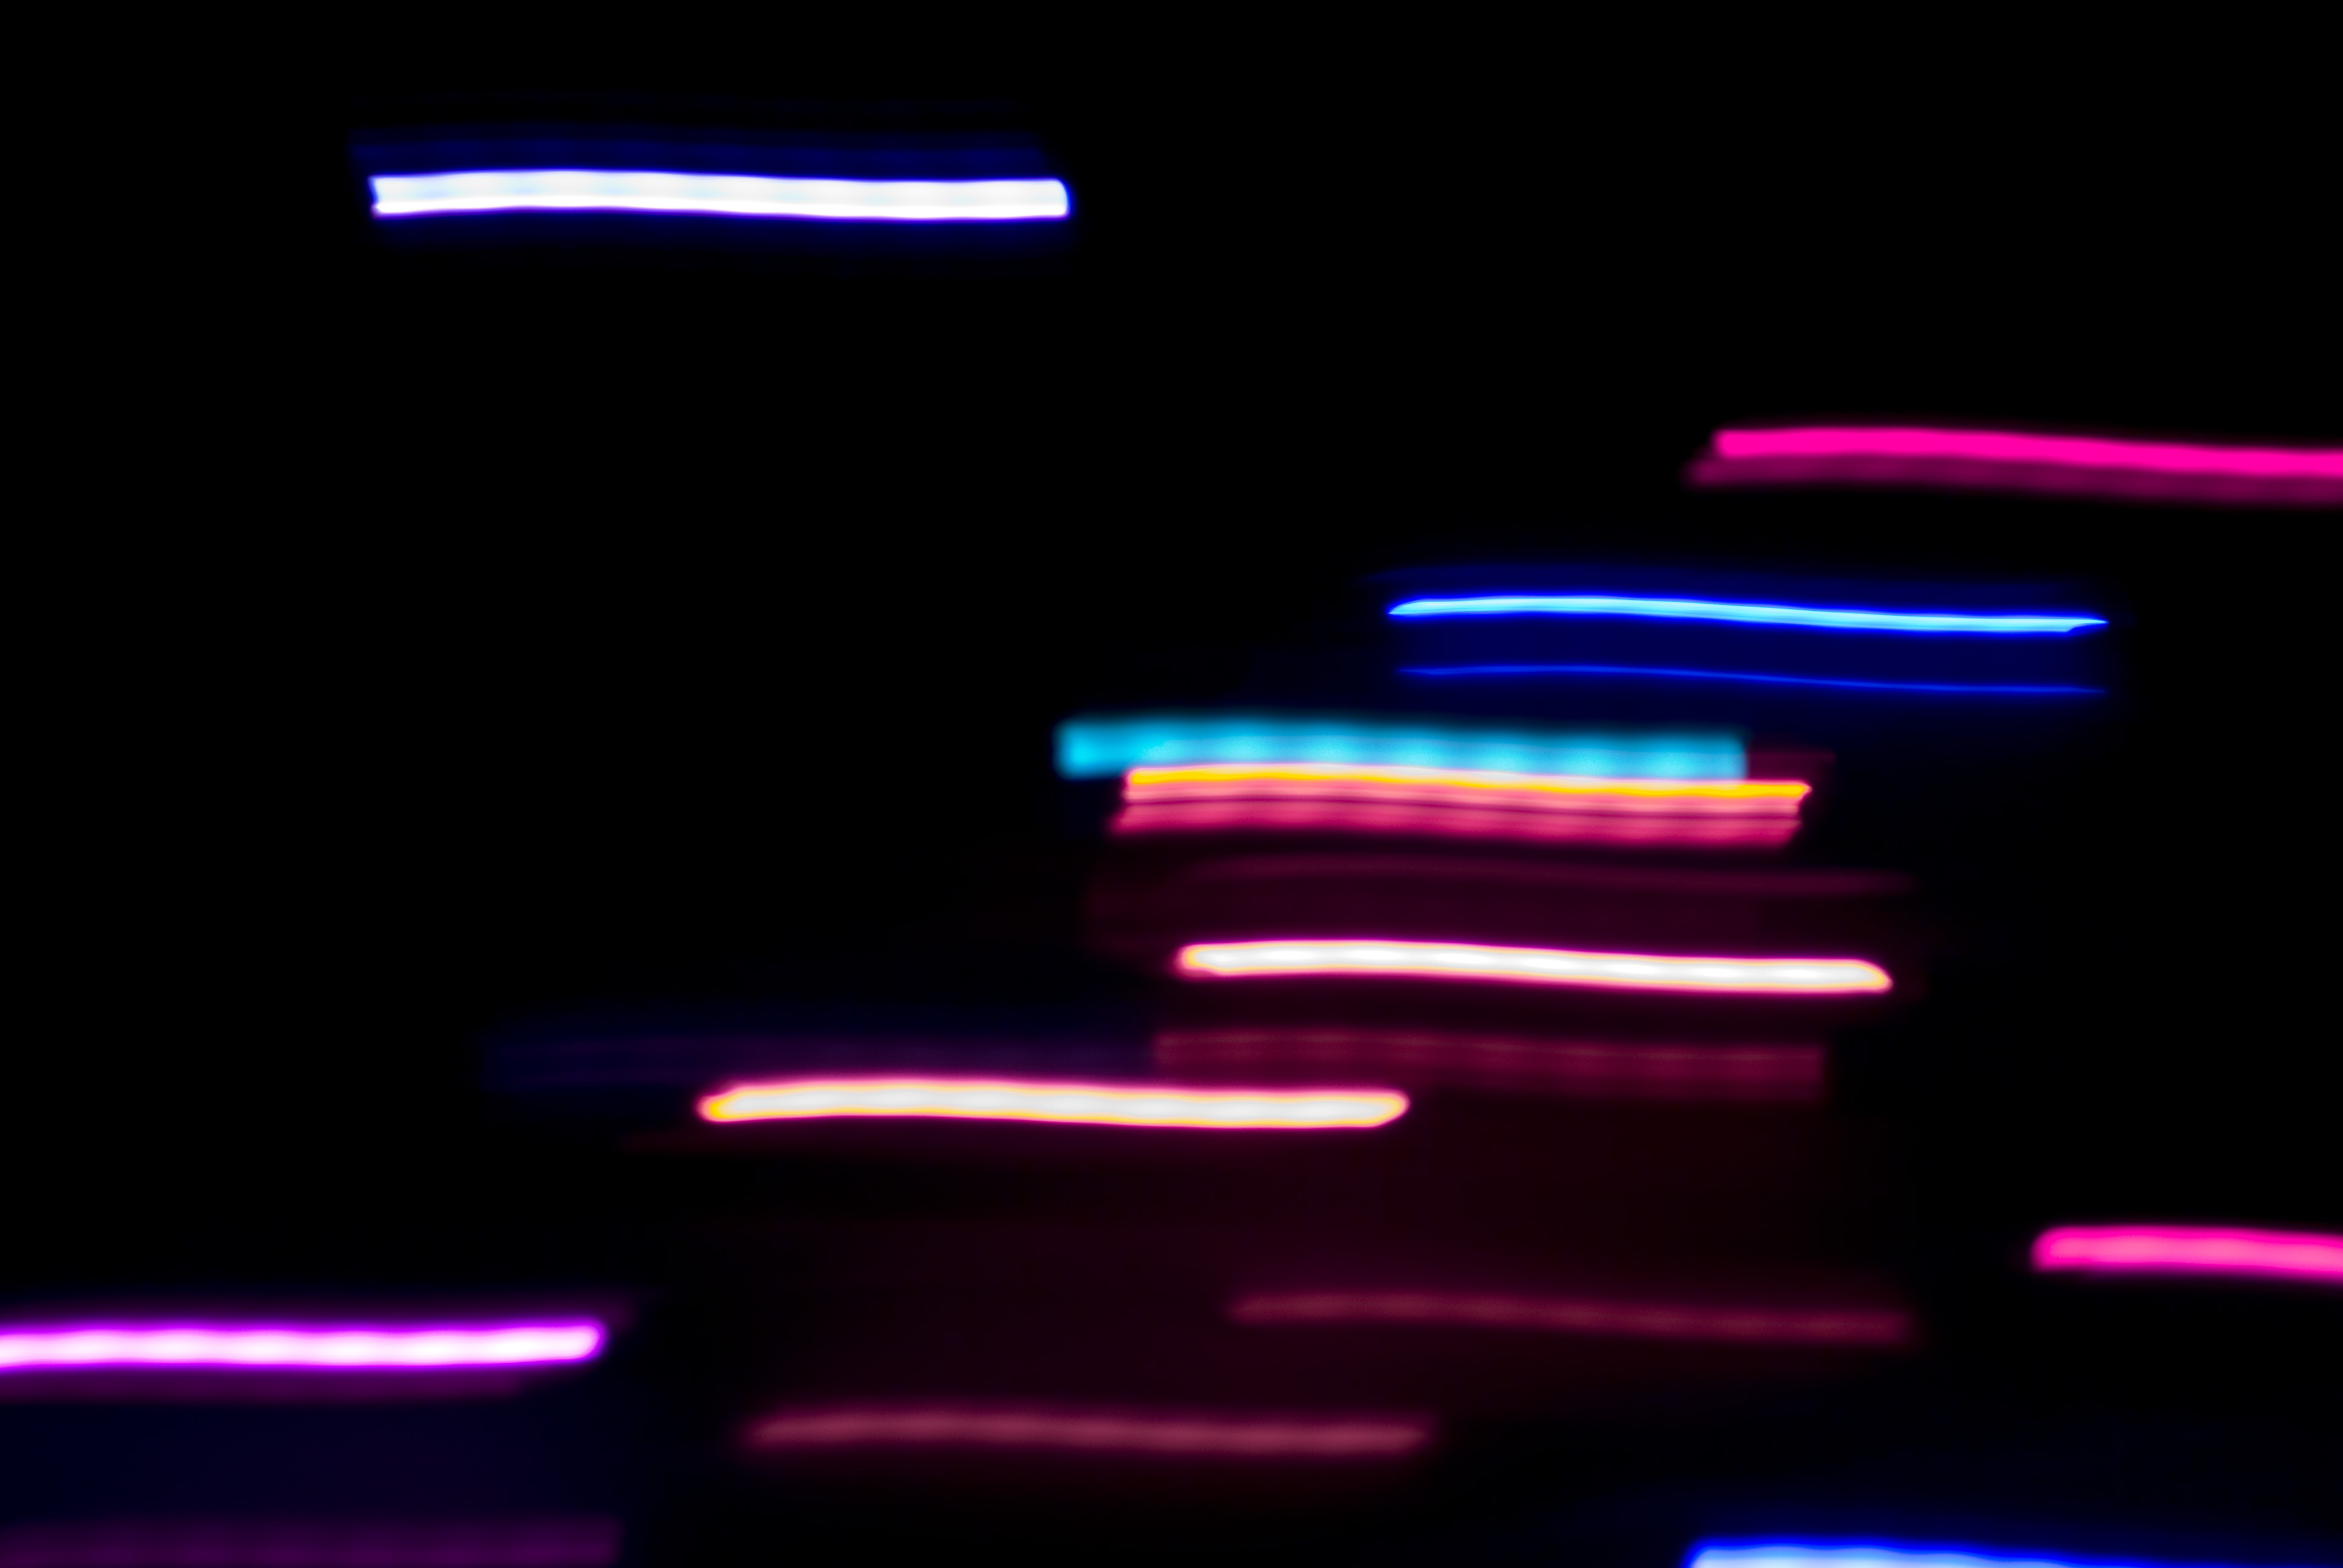 blurred motion trails, a long exposure of some moving coloured light